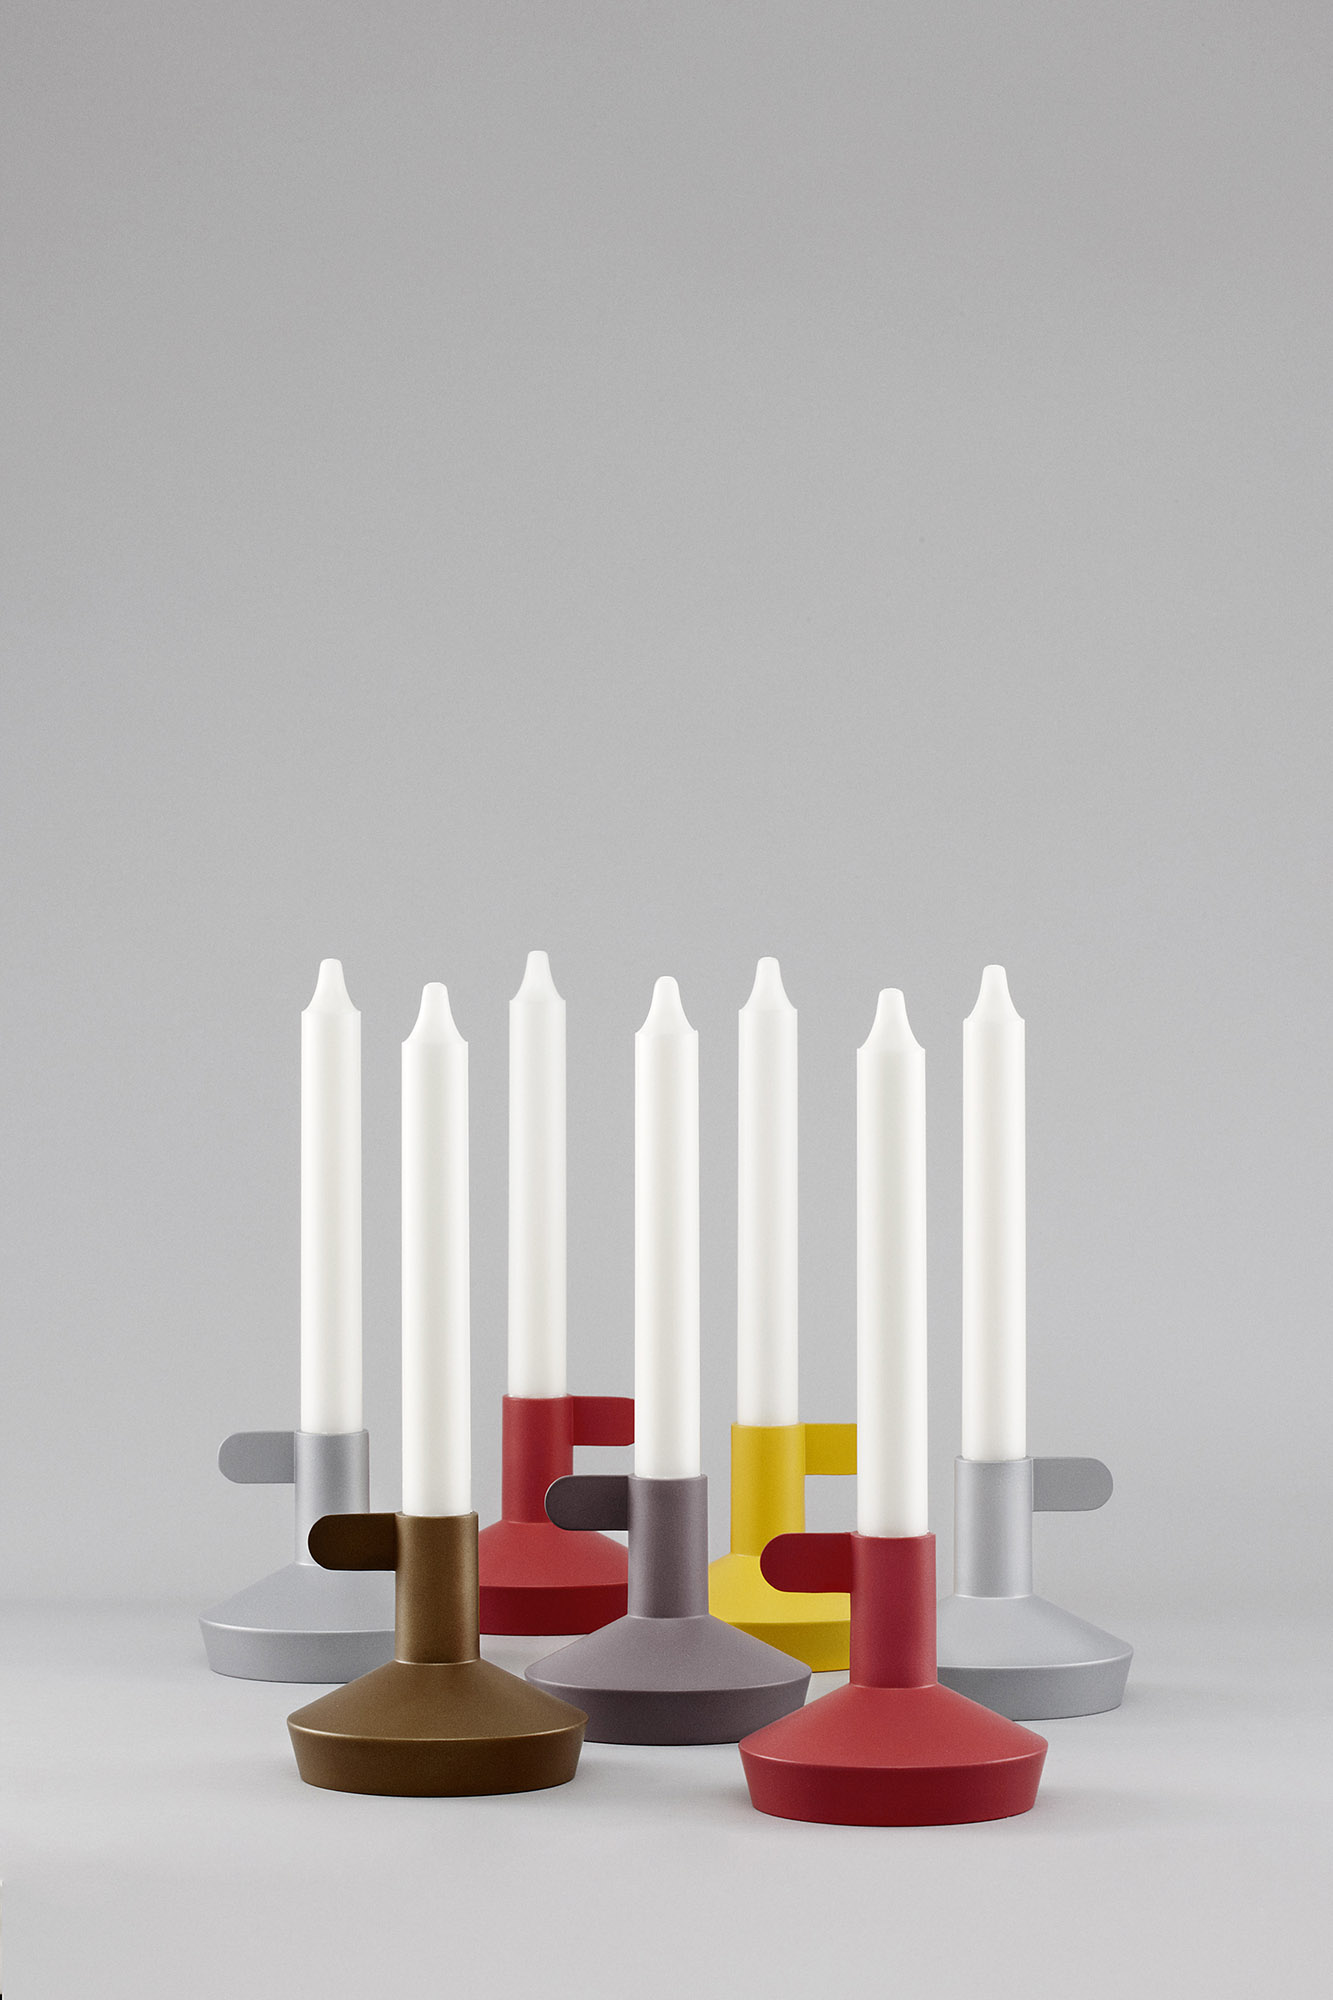 Flag_Group_Candles_Grey_Background_tall_1333x2000